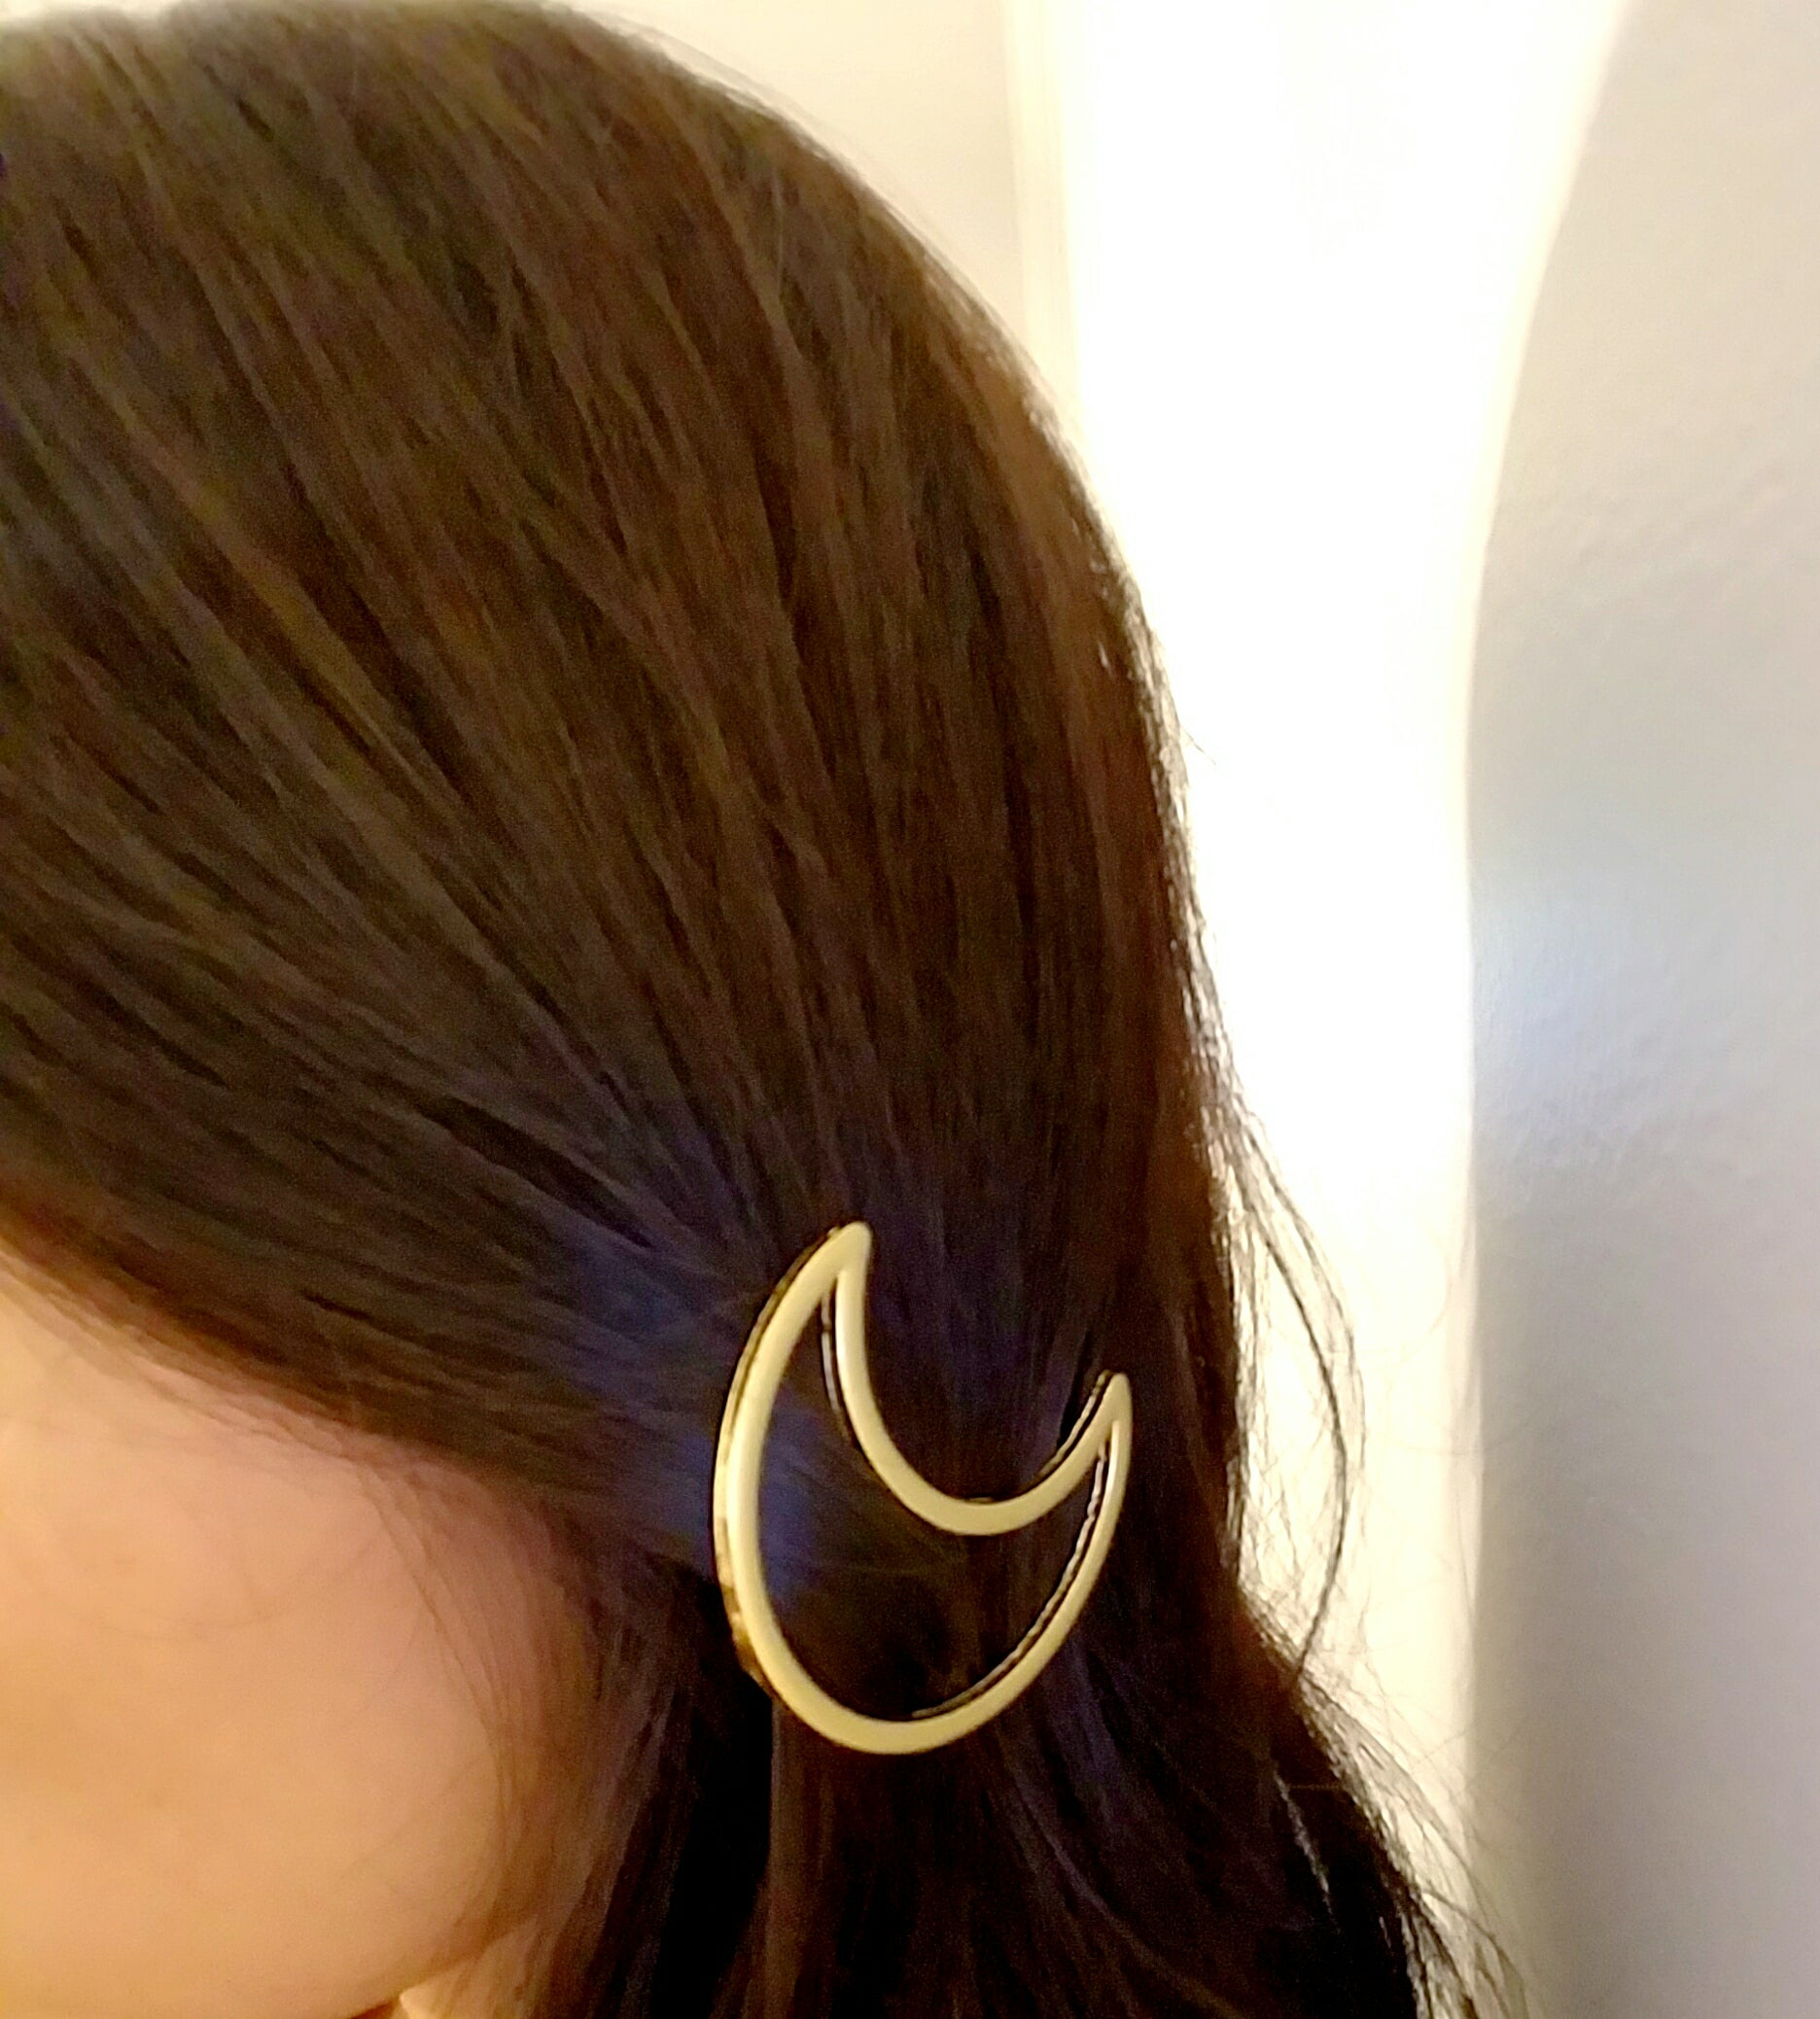 stylish minimal hair clip, curved metal hair clip, hair pin trend, wearing hair pin trend, pretty moon pin, lunar hair pin, lunar moon hair clip, lunar year hair pin gift, lunar new year gifts, moon lover gift idea, gold barrette, christmas gift ideas for women, top hair accessories, trending hair clips, gold metal pins for women, how to use fun hair clips, pash jewels, pashjewels